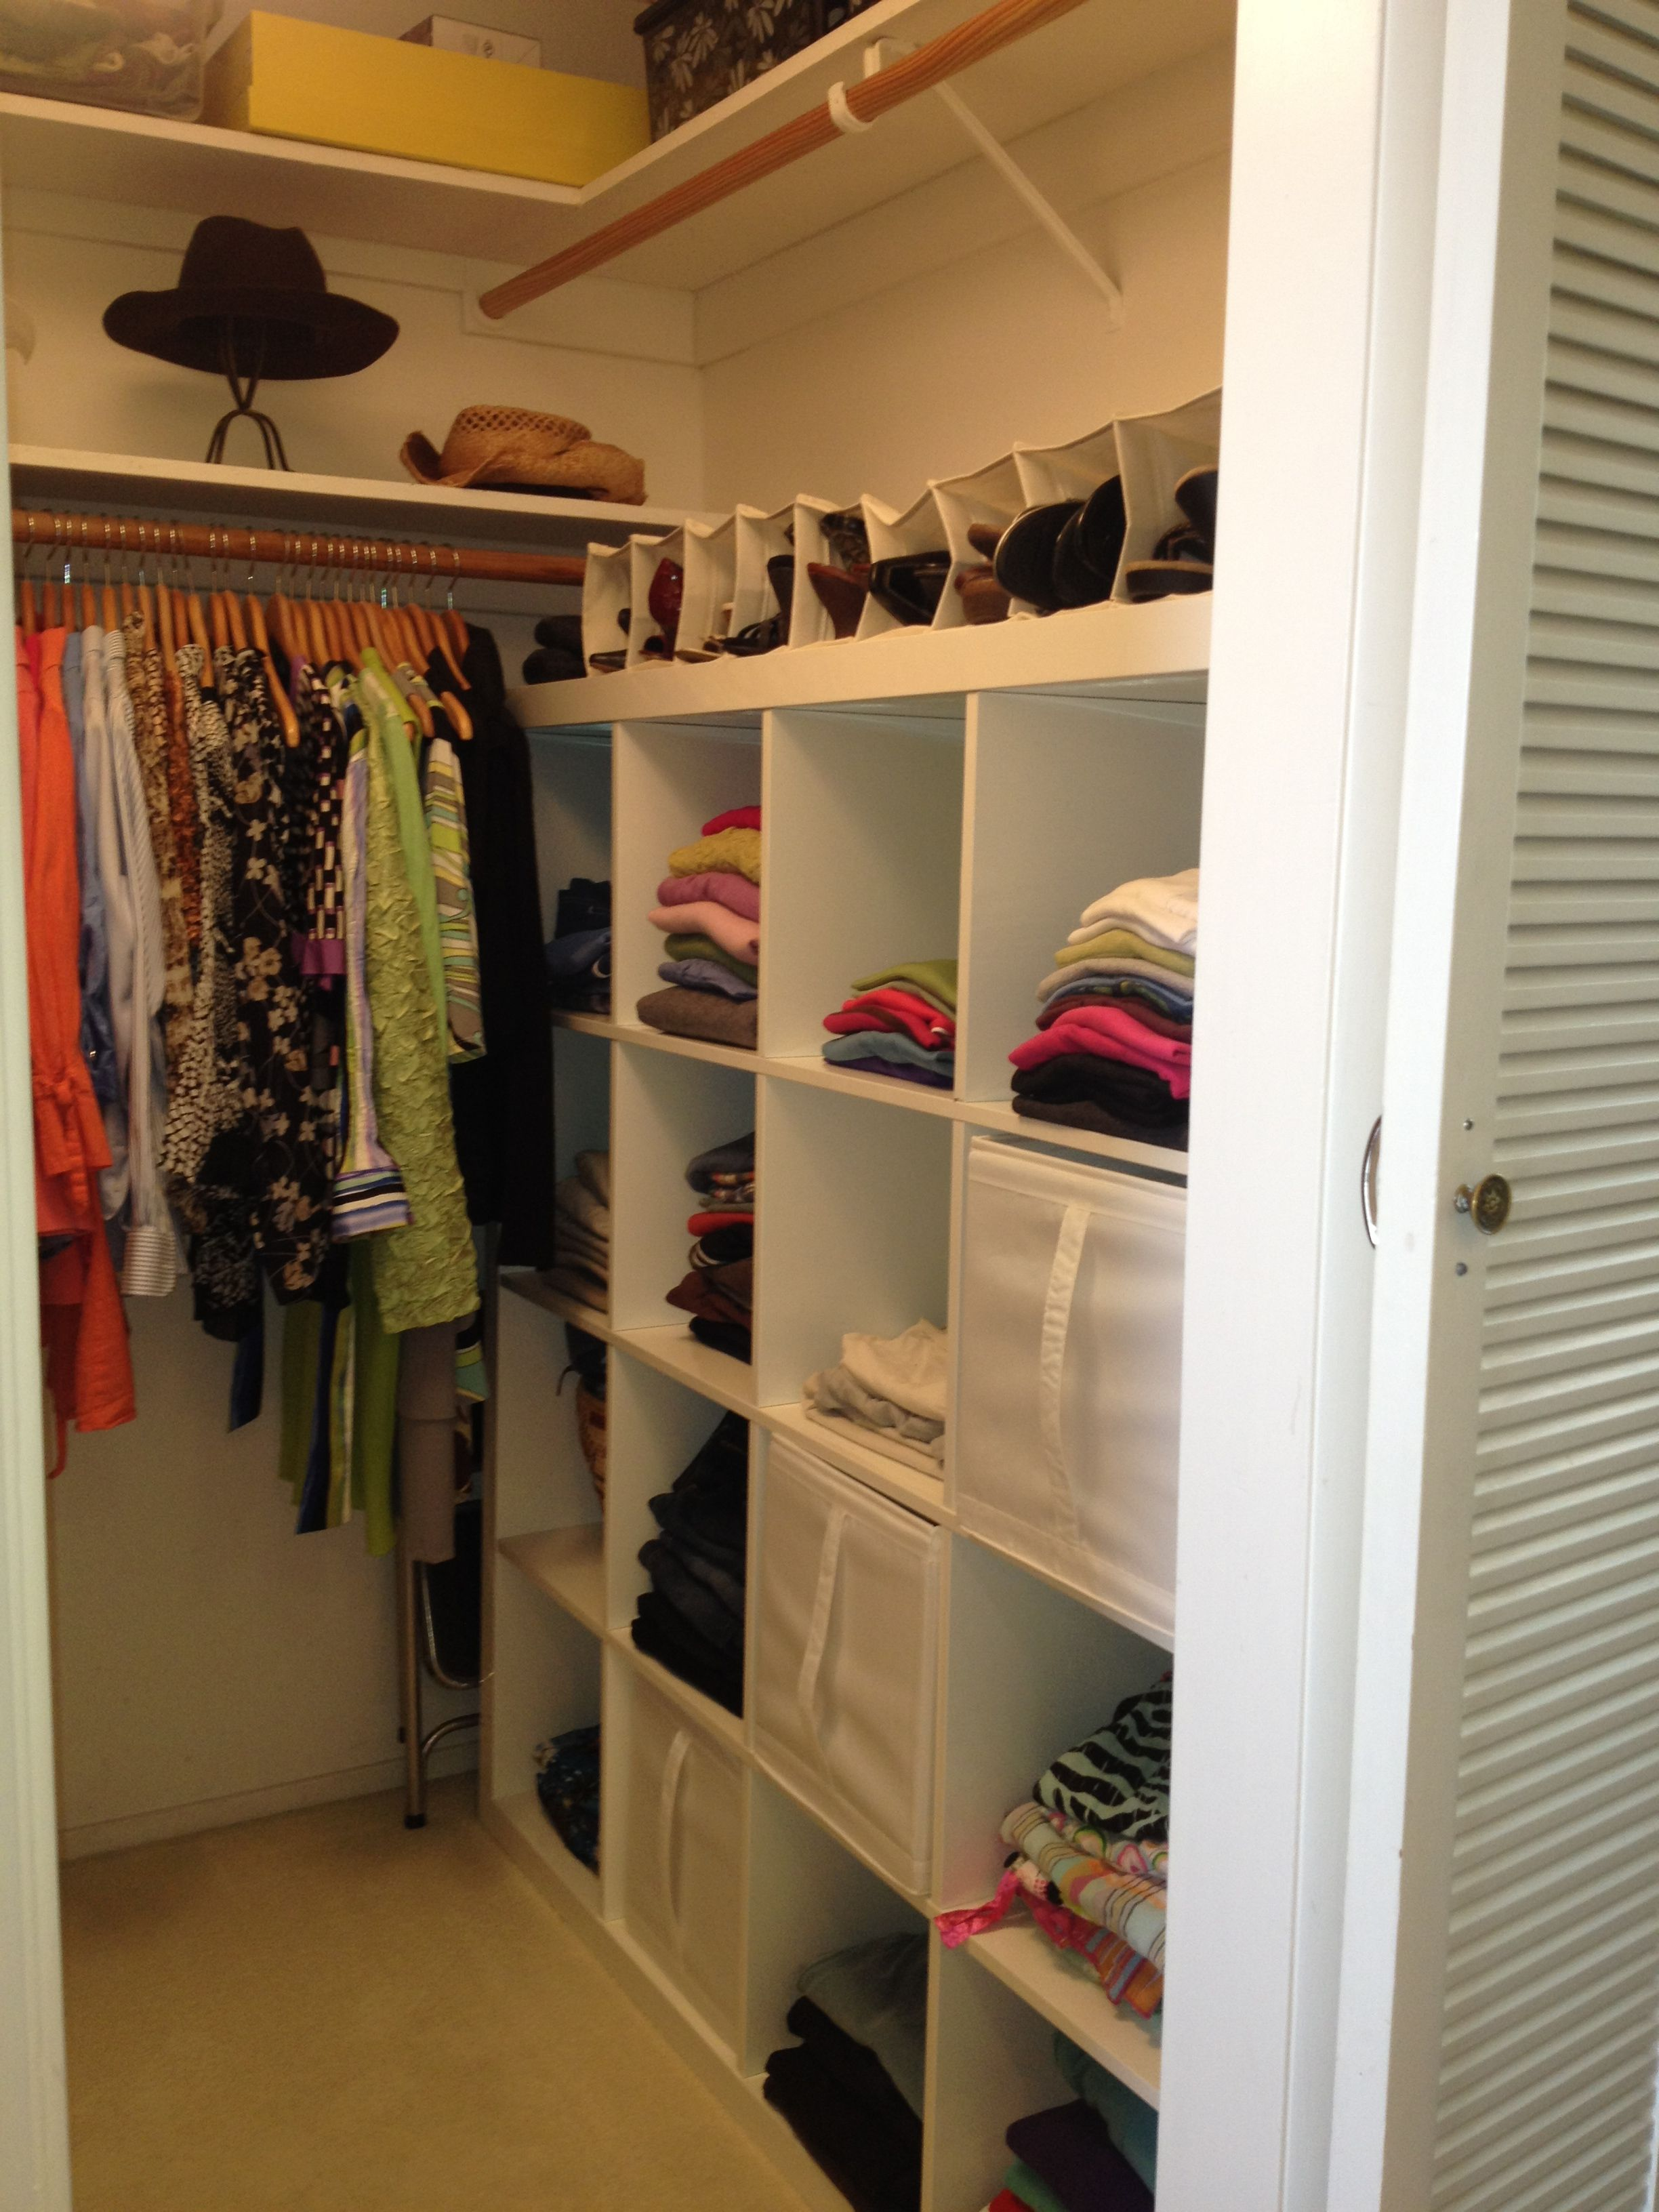 image result for images of small walk in closet organizers